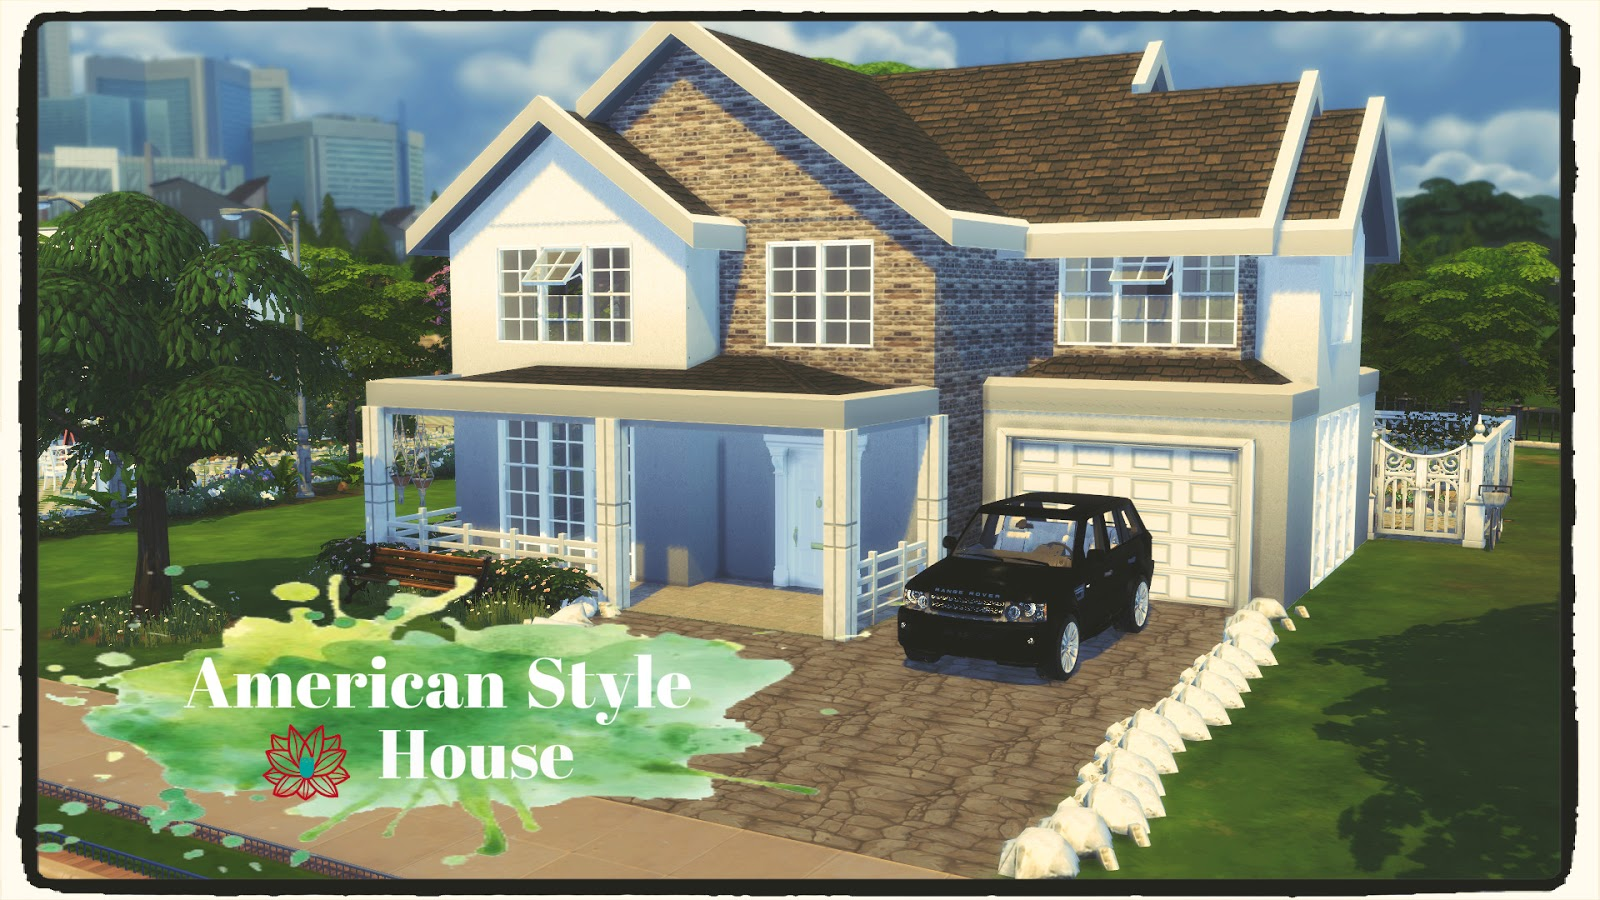 My sims 4 blog american style house by dinhagamer for American style homes